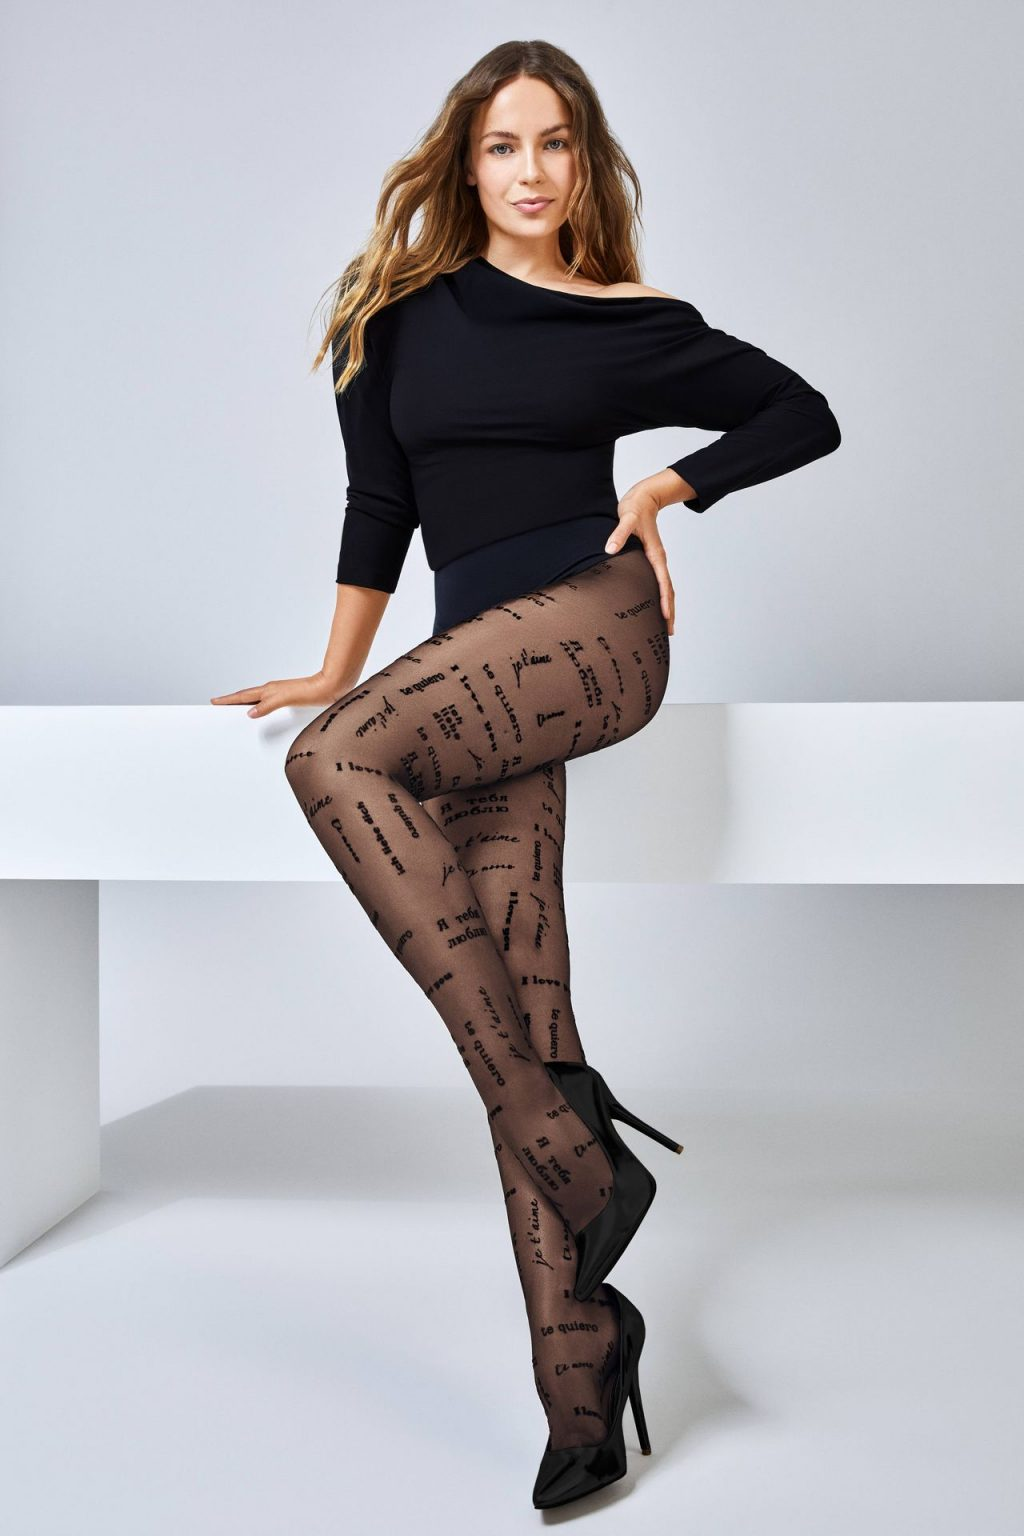 Emma Louise Connolly Stars in Calzedonia Legwear Campaign (19 Photos)